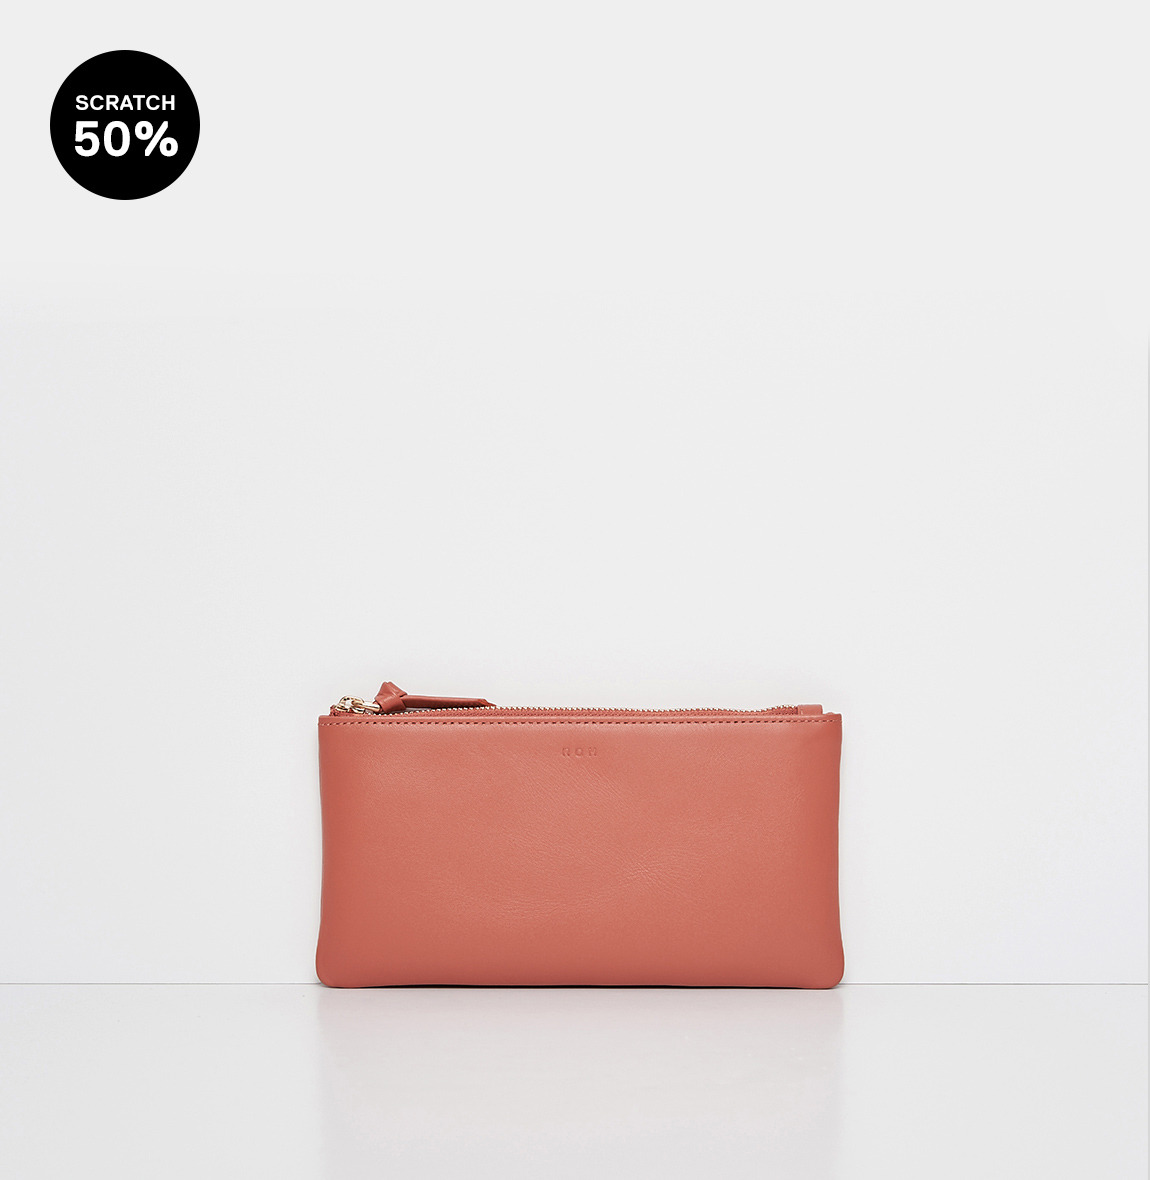 Square large zip wallet Amber coral-스크레치